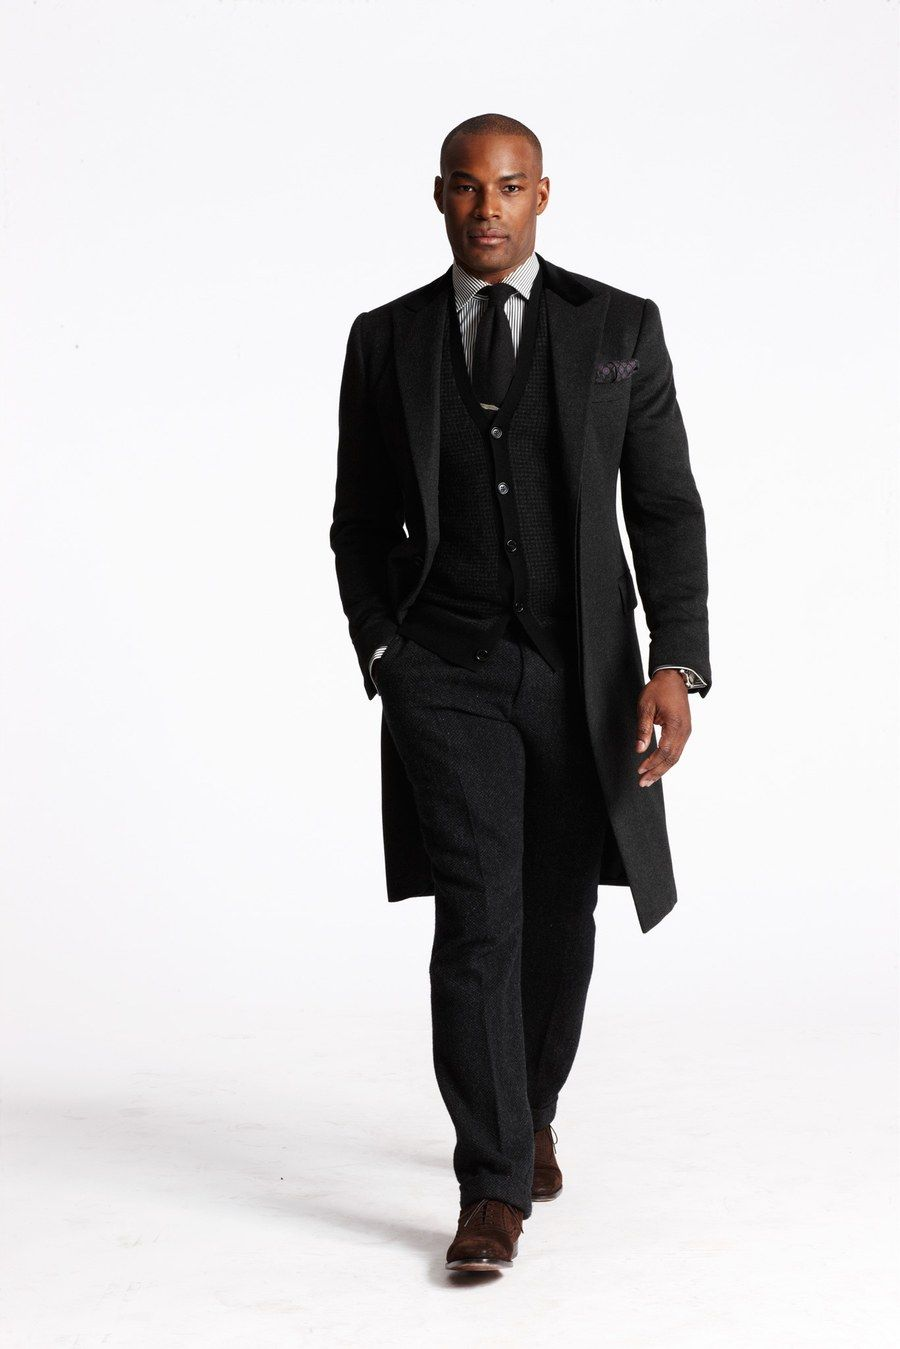 Ralph Lauren Fall 2013 Menswear Fashion Show